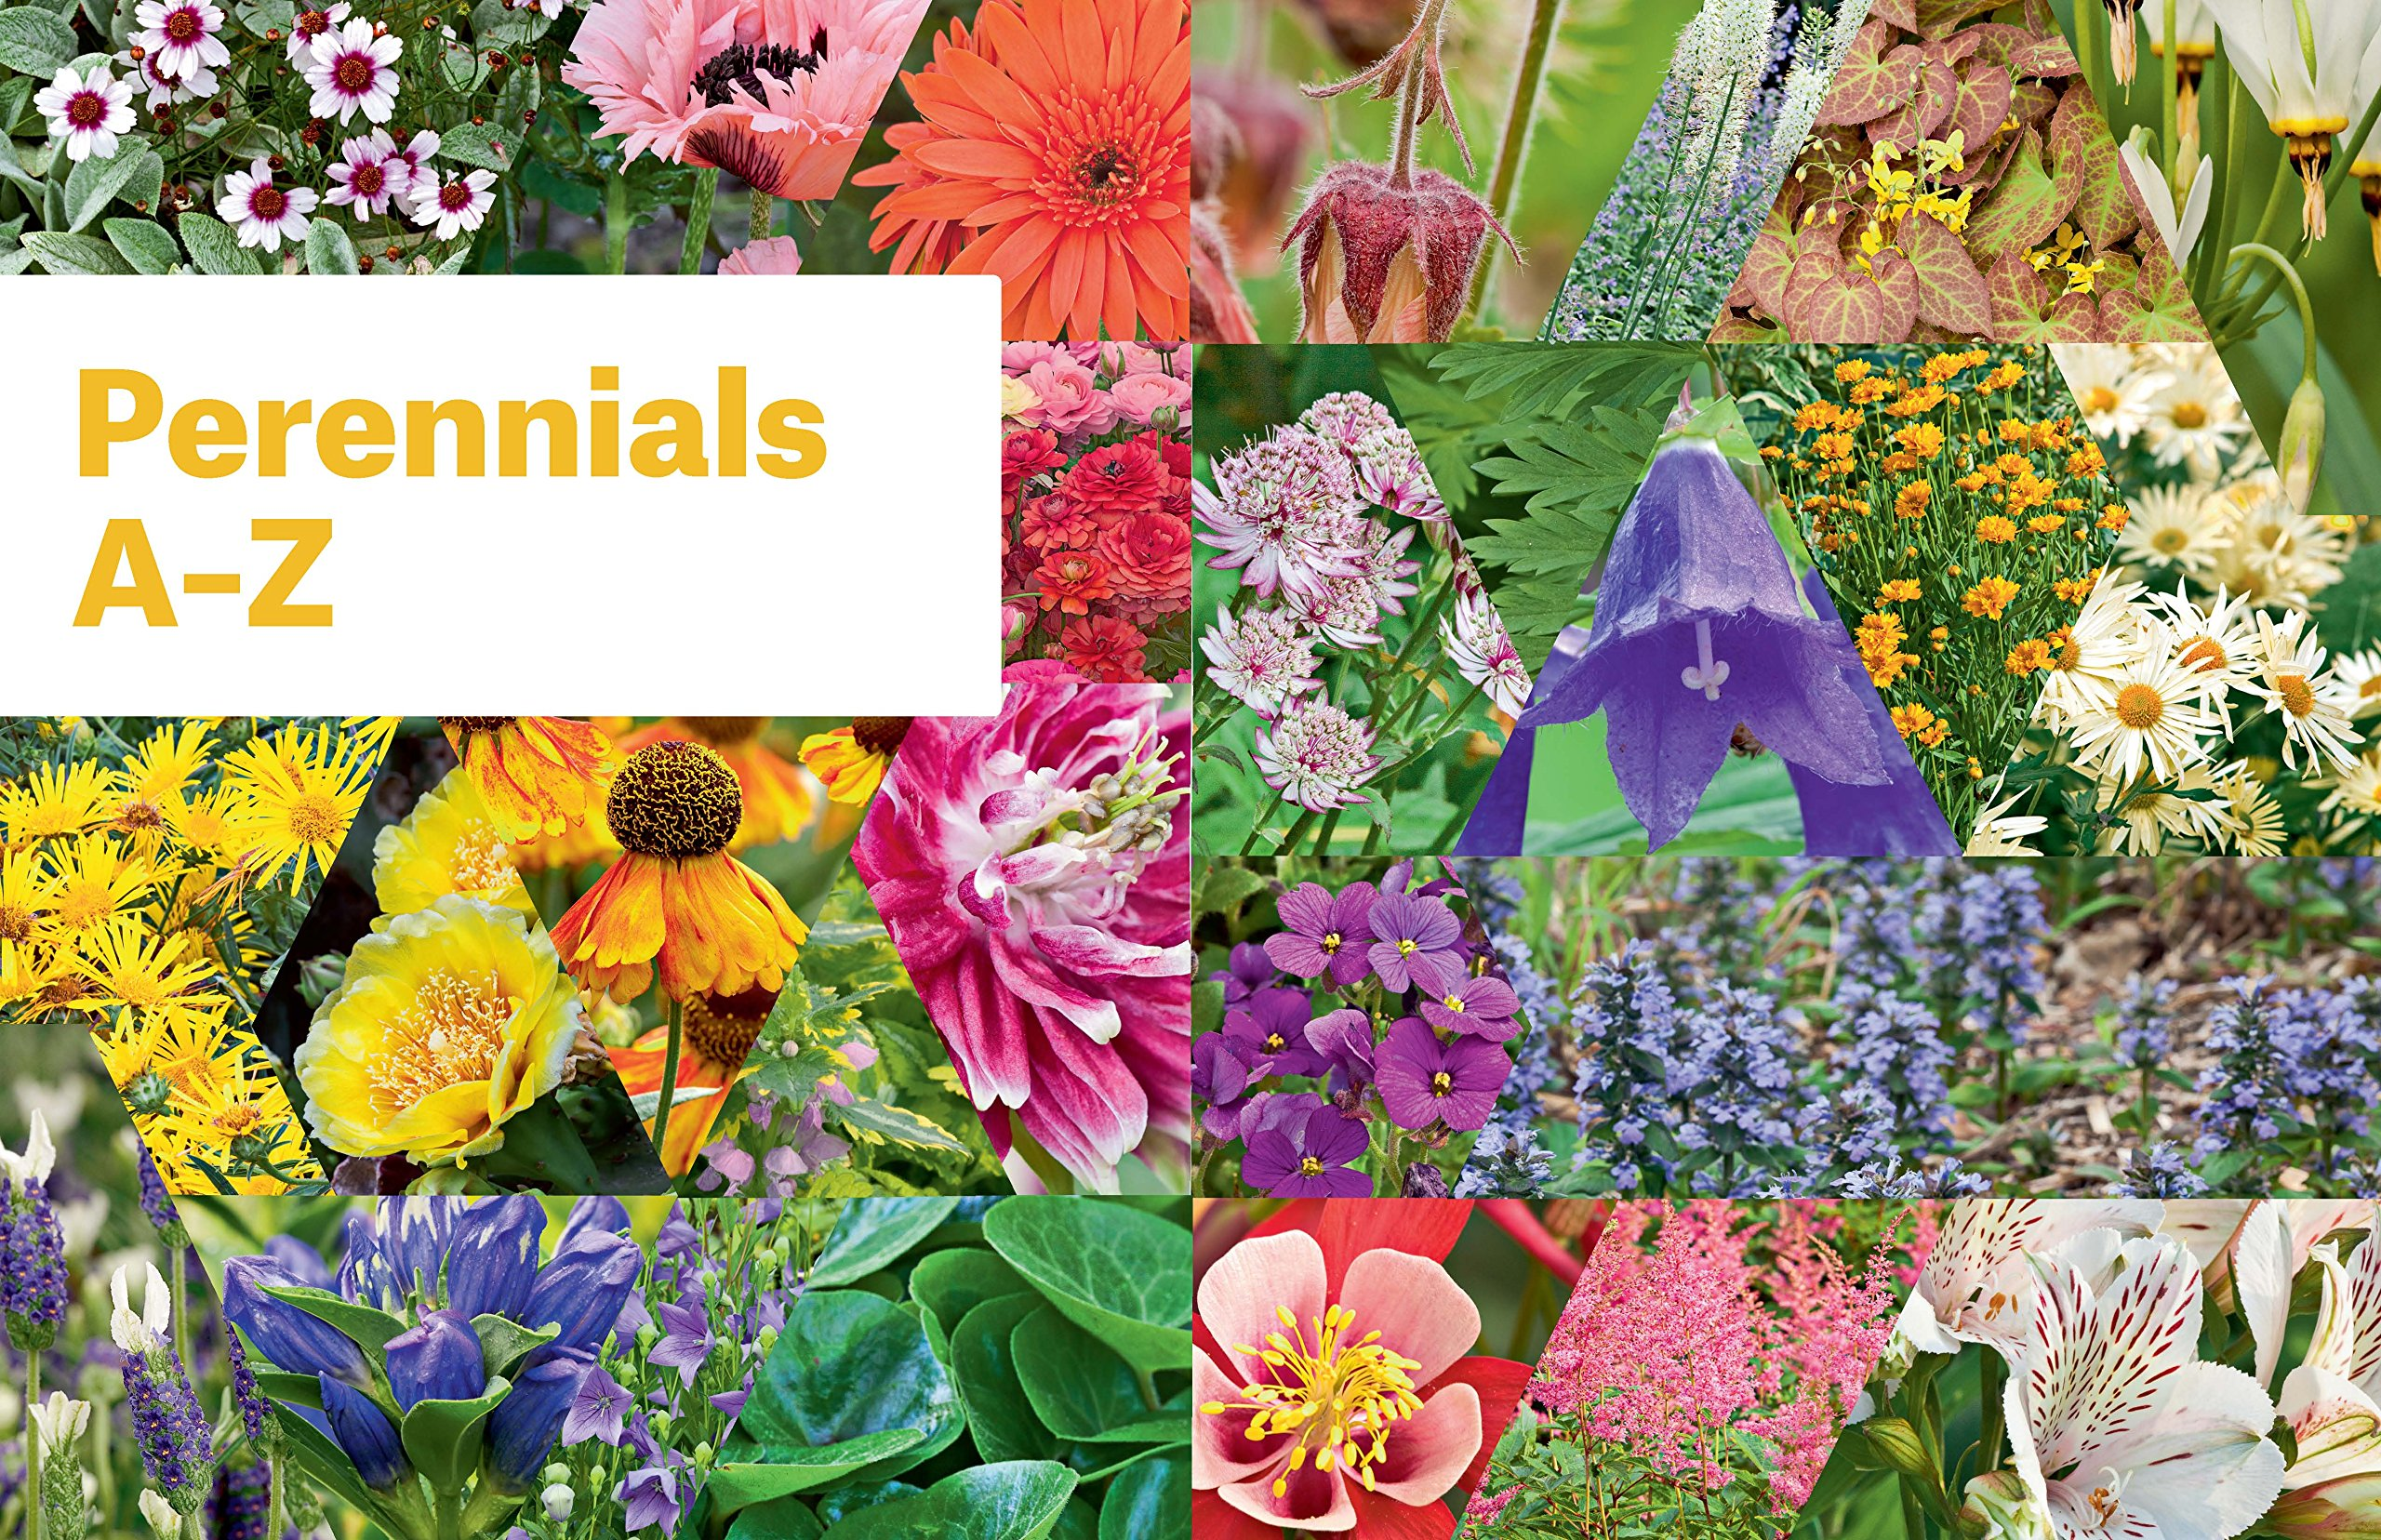 Essential Perennials The Complete Reference To 2700 Perennials For